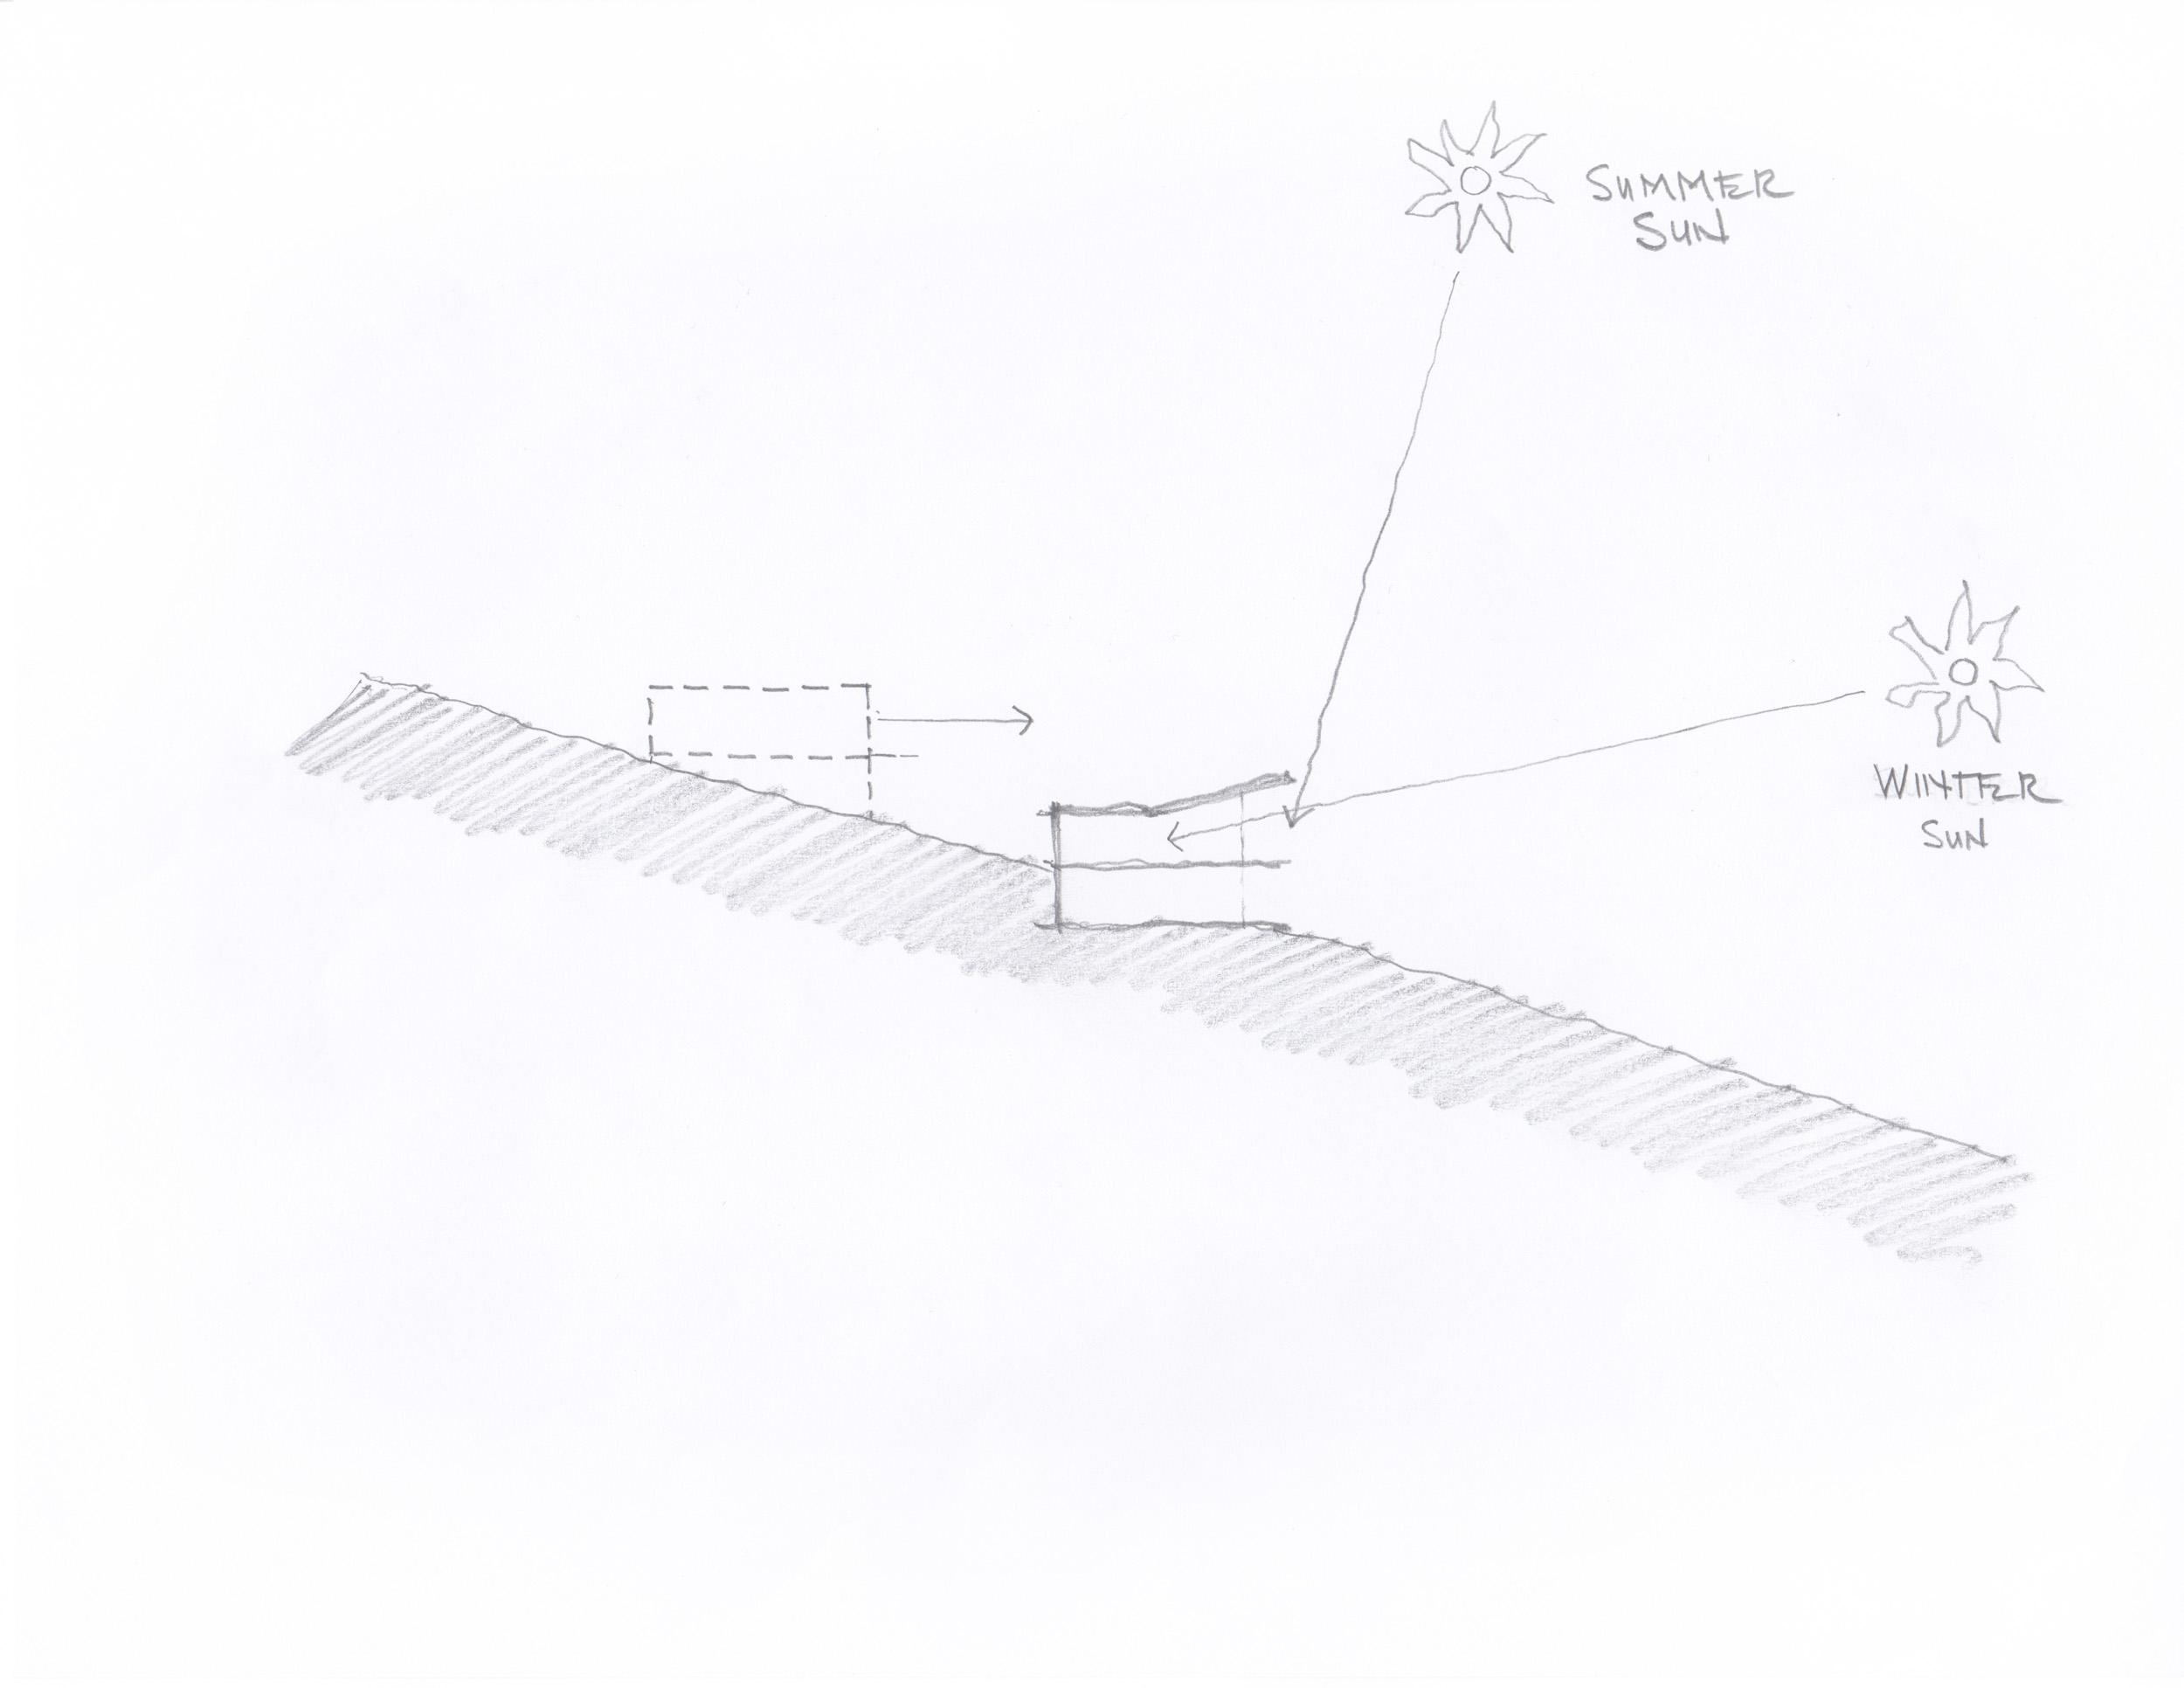 A site section sketch illustrates the strategy for sun shading during the heat of summer and bringing sunshine deep into the home during winter